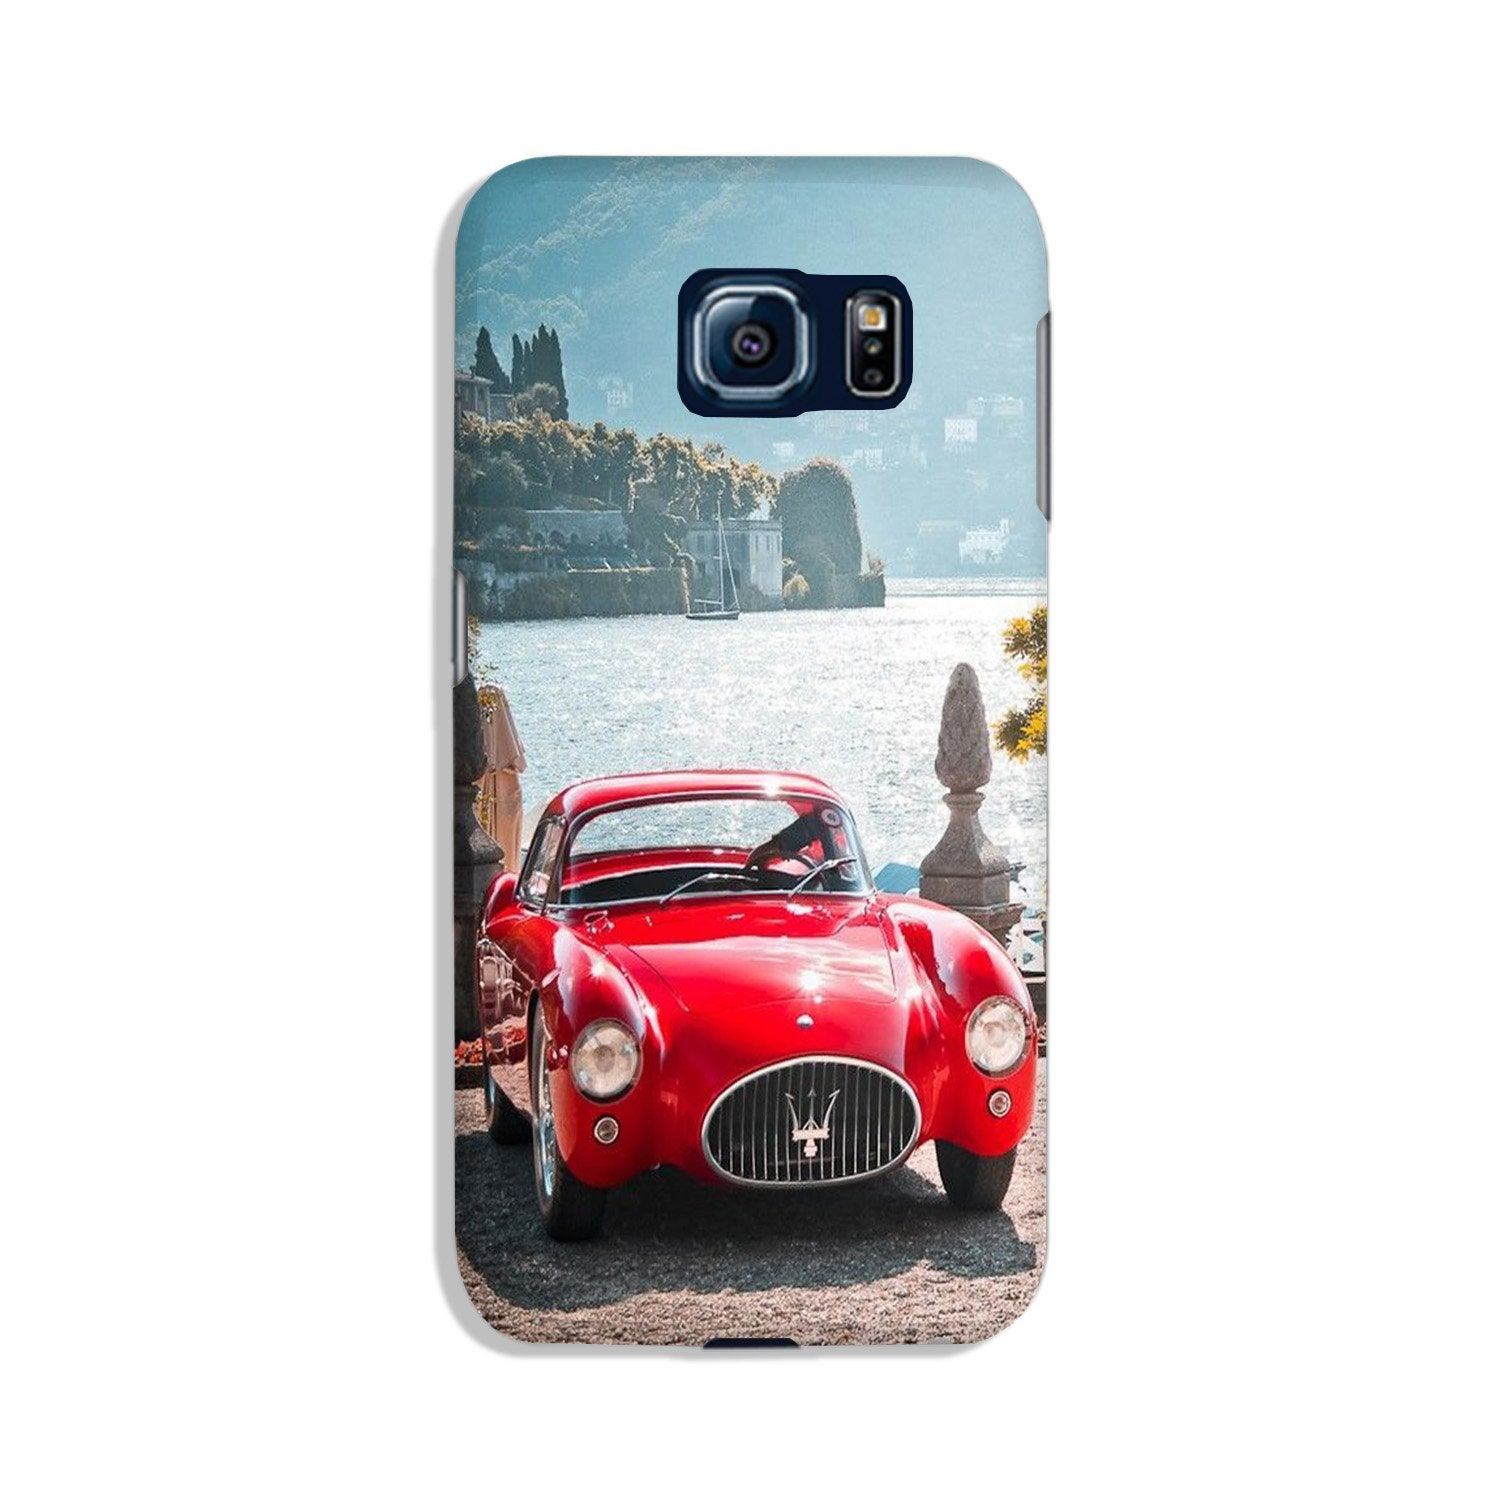 Vintage Car Case for Galaxy S6